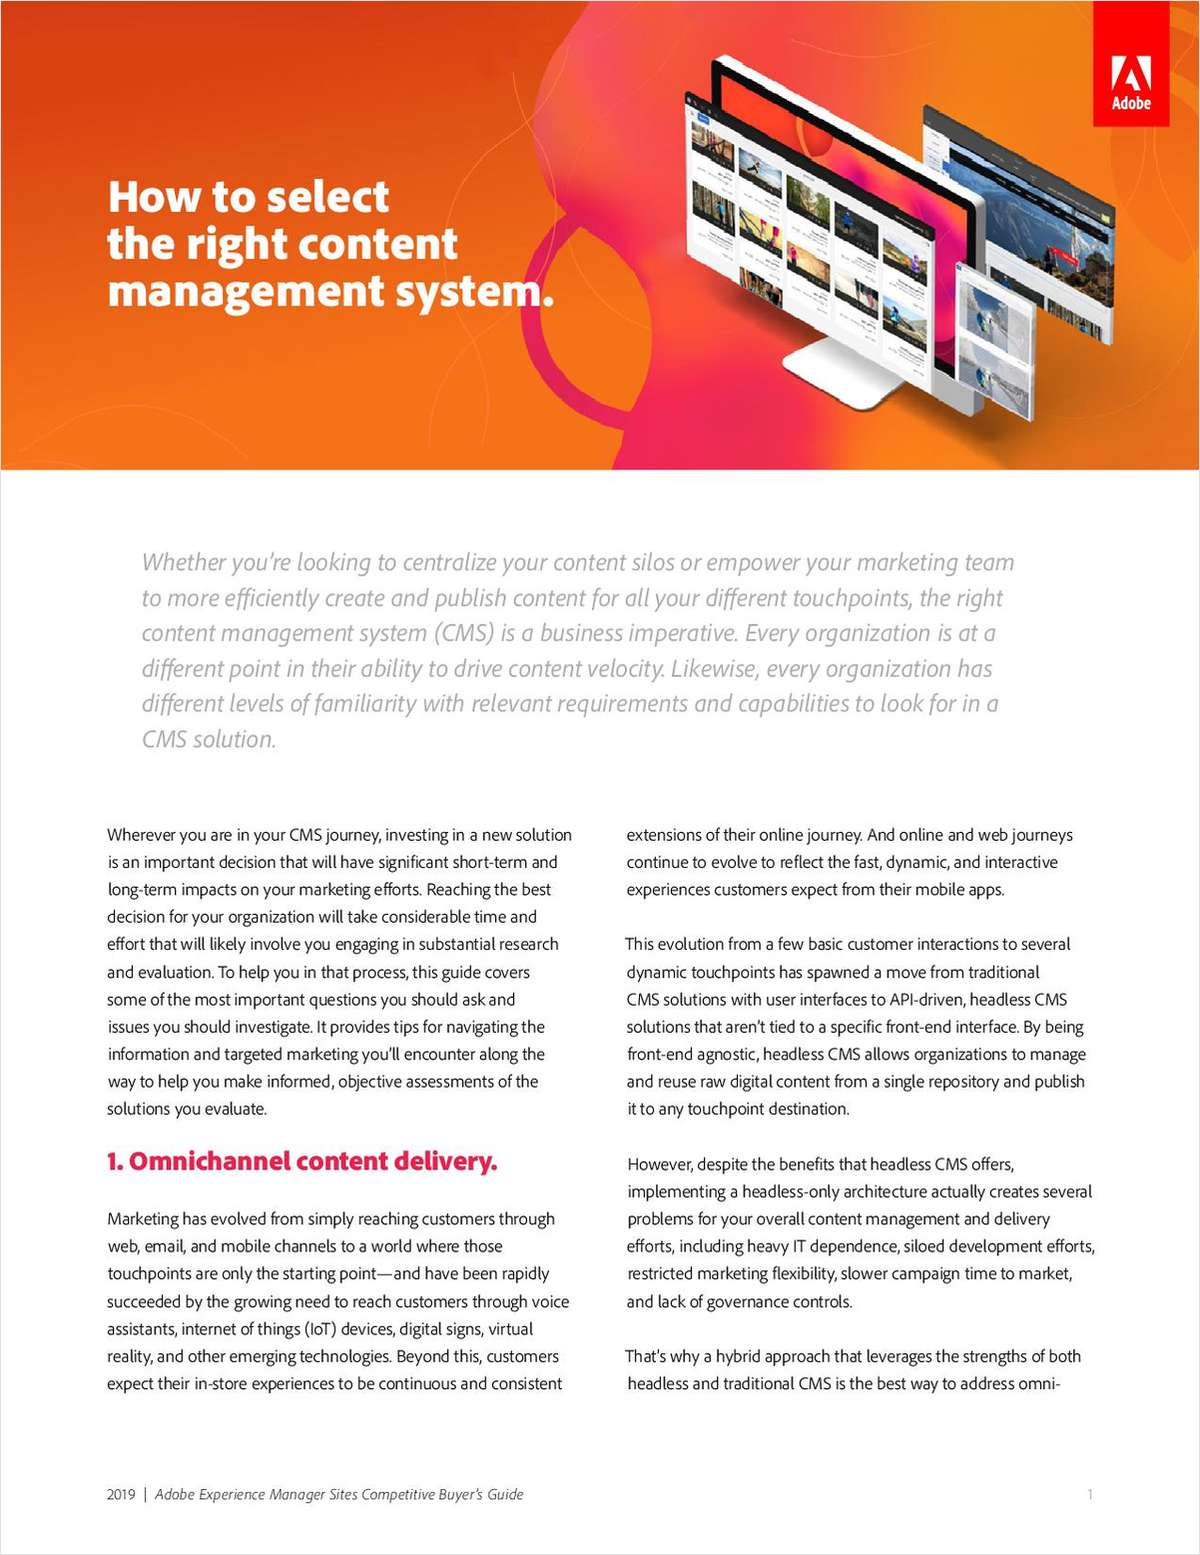 How to Select the Right Content Management System